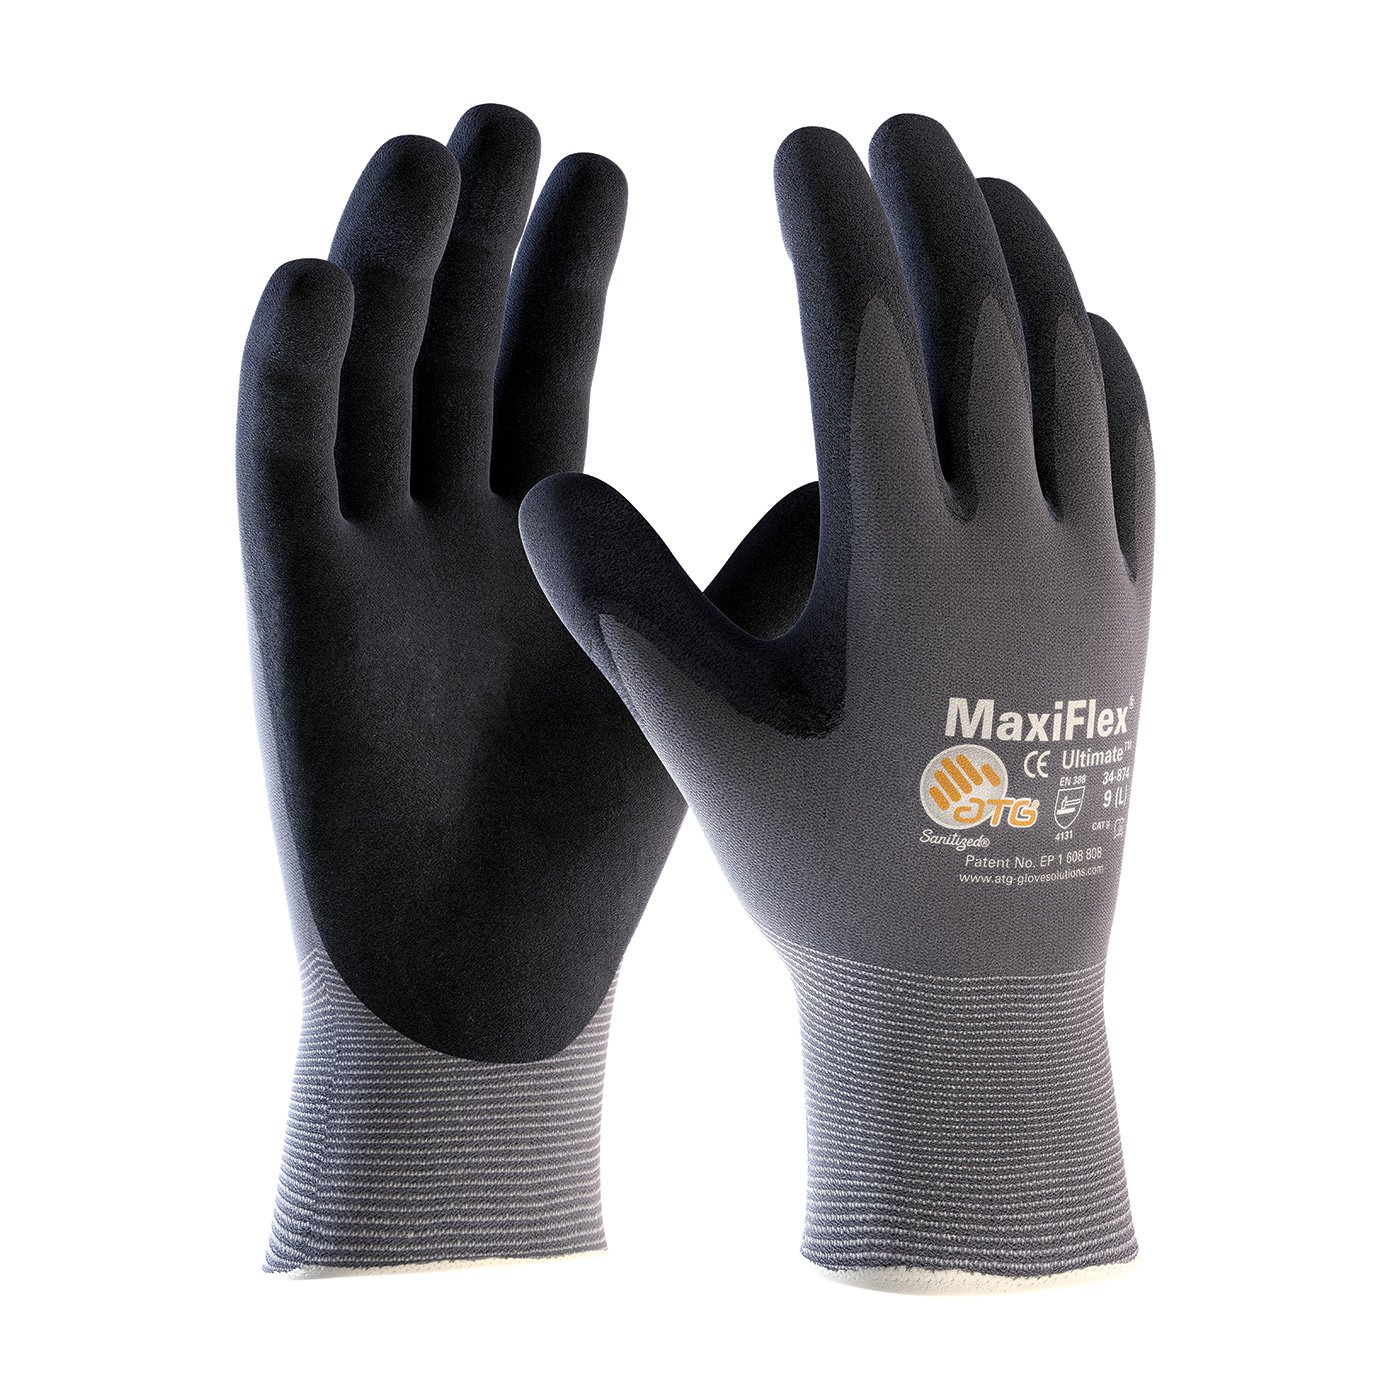 ATG 34-874/XL MaxiFlex Ultimate - Nylon, Micro-Foam Nitrile Grip Gloves - Black/Gray - X-Large - 12 Pair Per Pack by Maxiflex